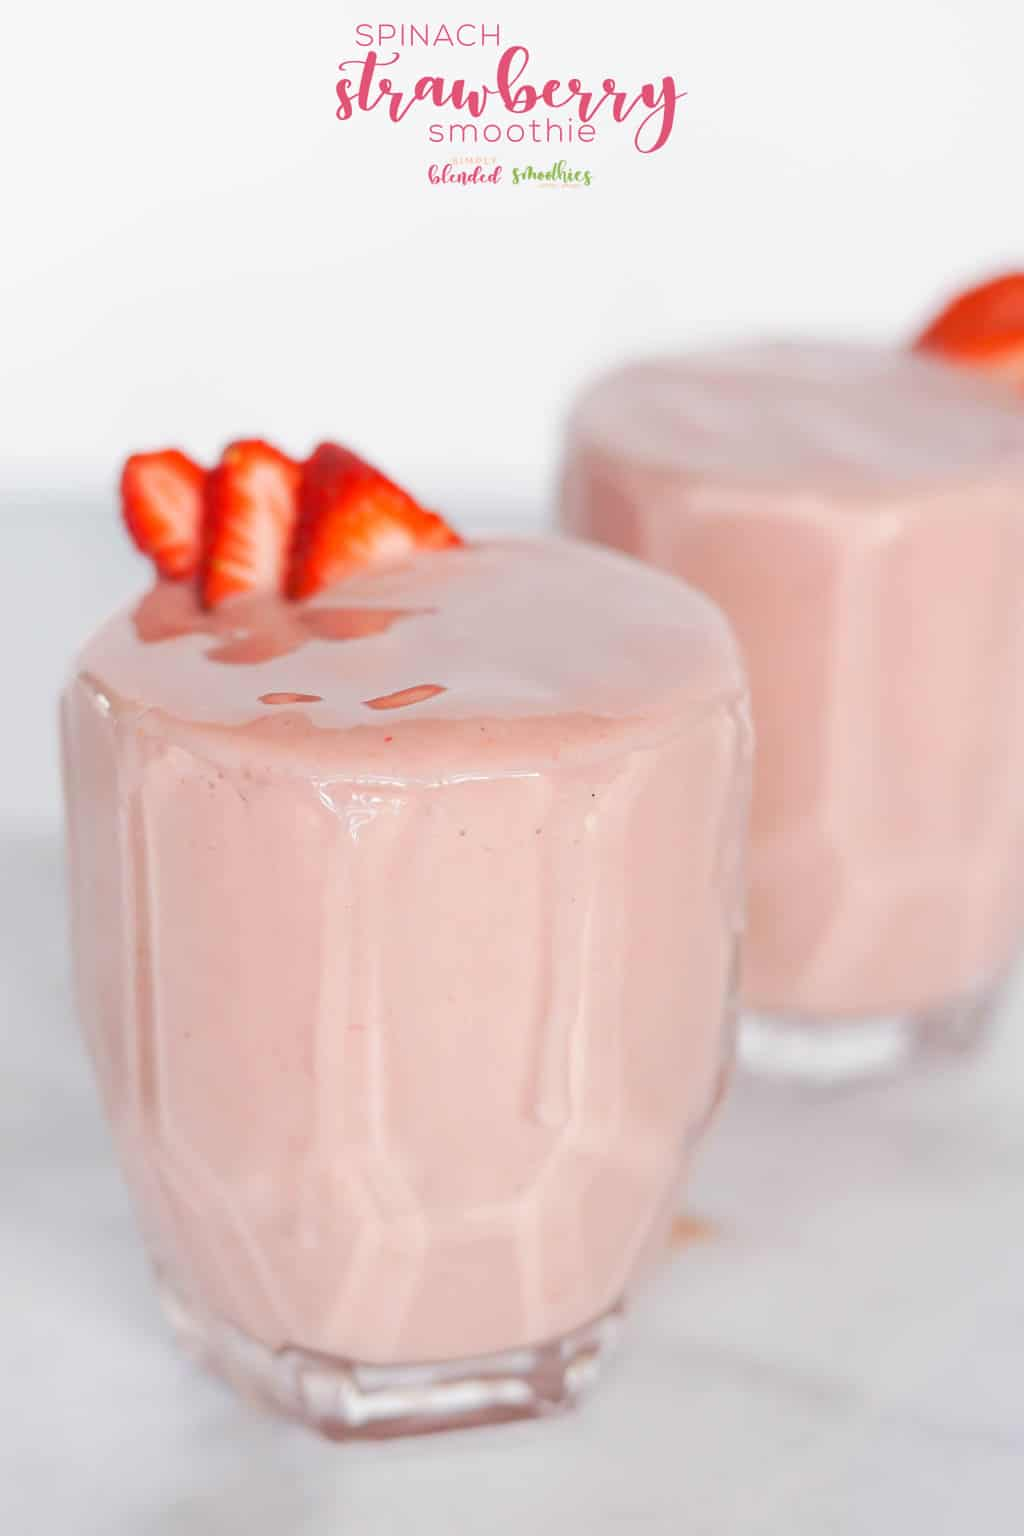 Strawberry Spinach Smoothie - this easy recipe is delicious and is a great way to get some greens in your diet without tasting them